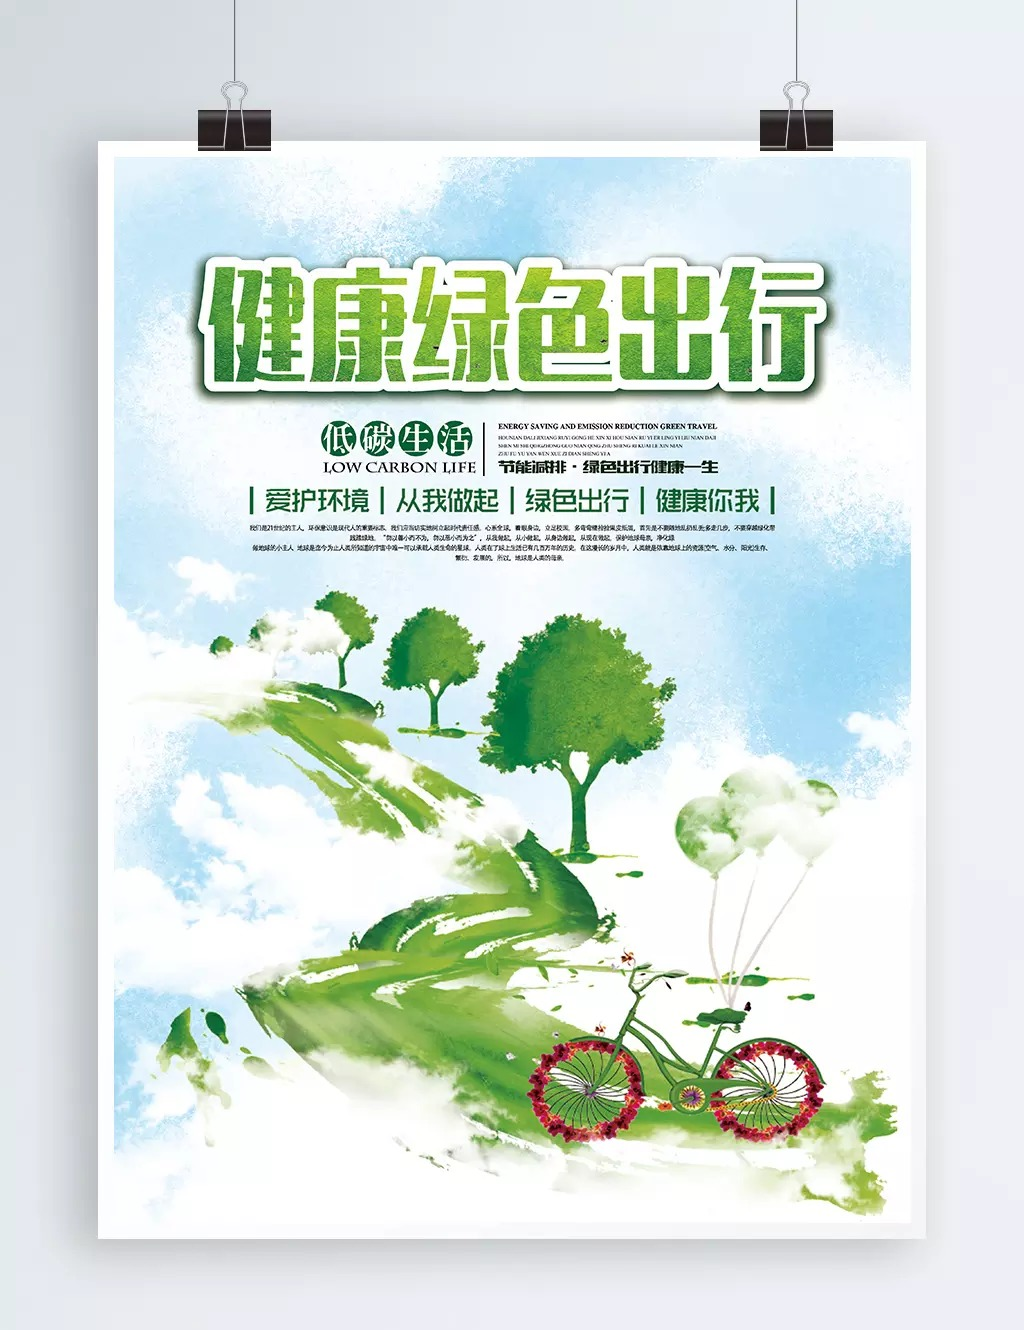 Green Healthy Travel Poster Cdr Template Posters Green Travel Energy Conservation Green Template For Free Download On Pngtree